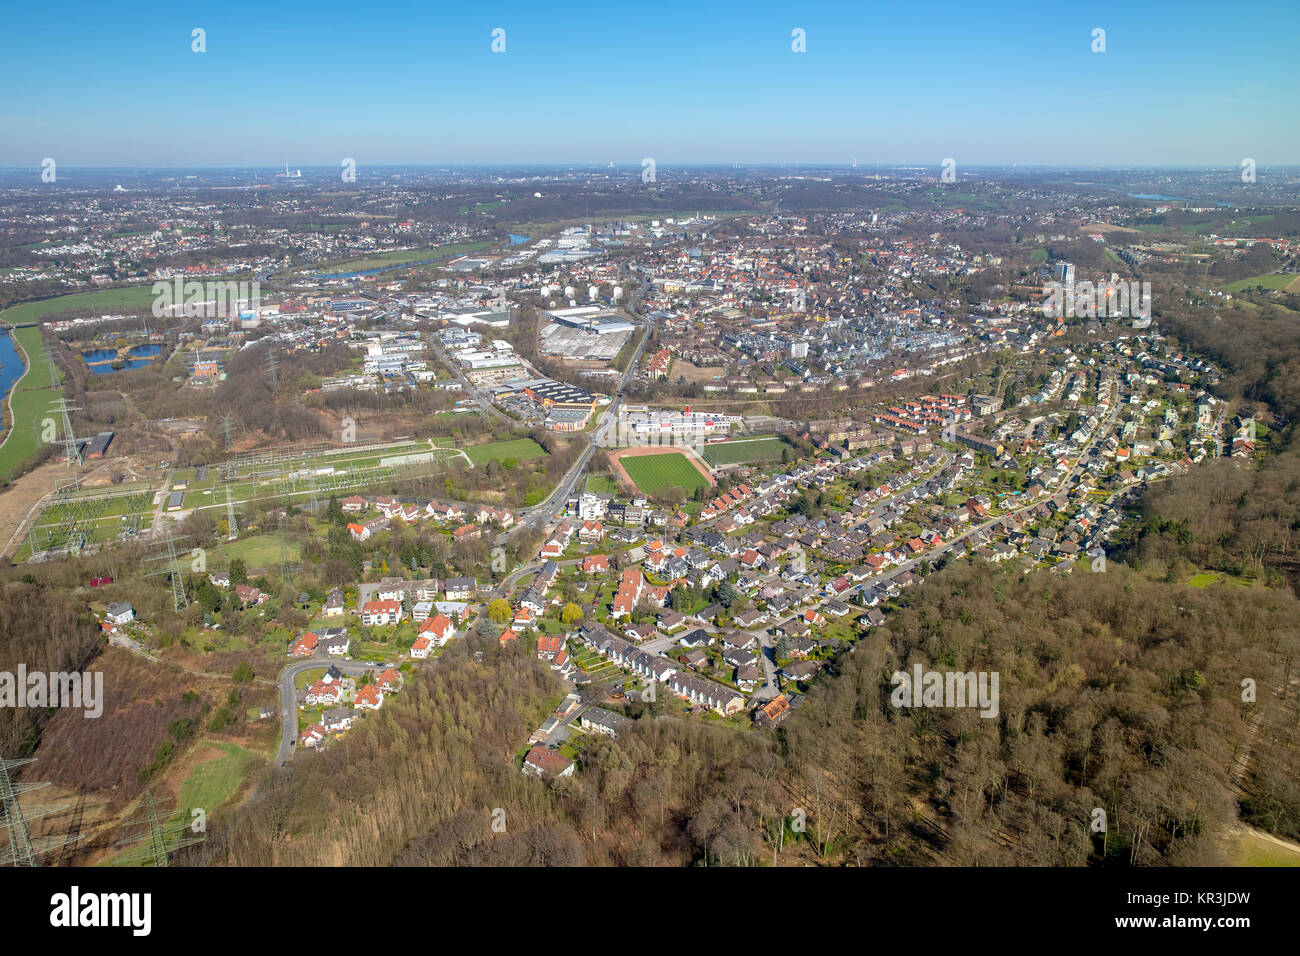 Hattingen Southern city, Hattingen, Ruhr, Nordrhein-Westfalen, Germany, Hattingen, Ruhr, Nordrhein-Westfalen, Germany, Stock Photo